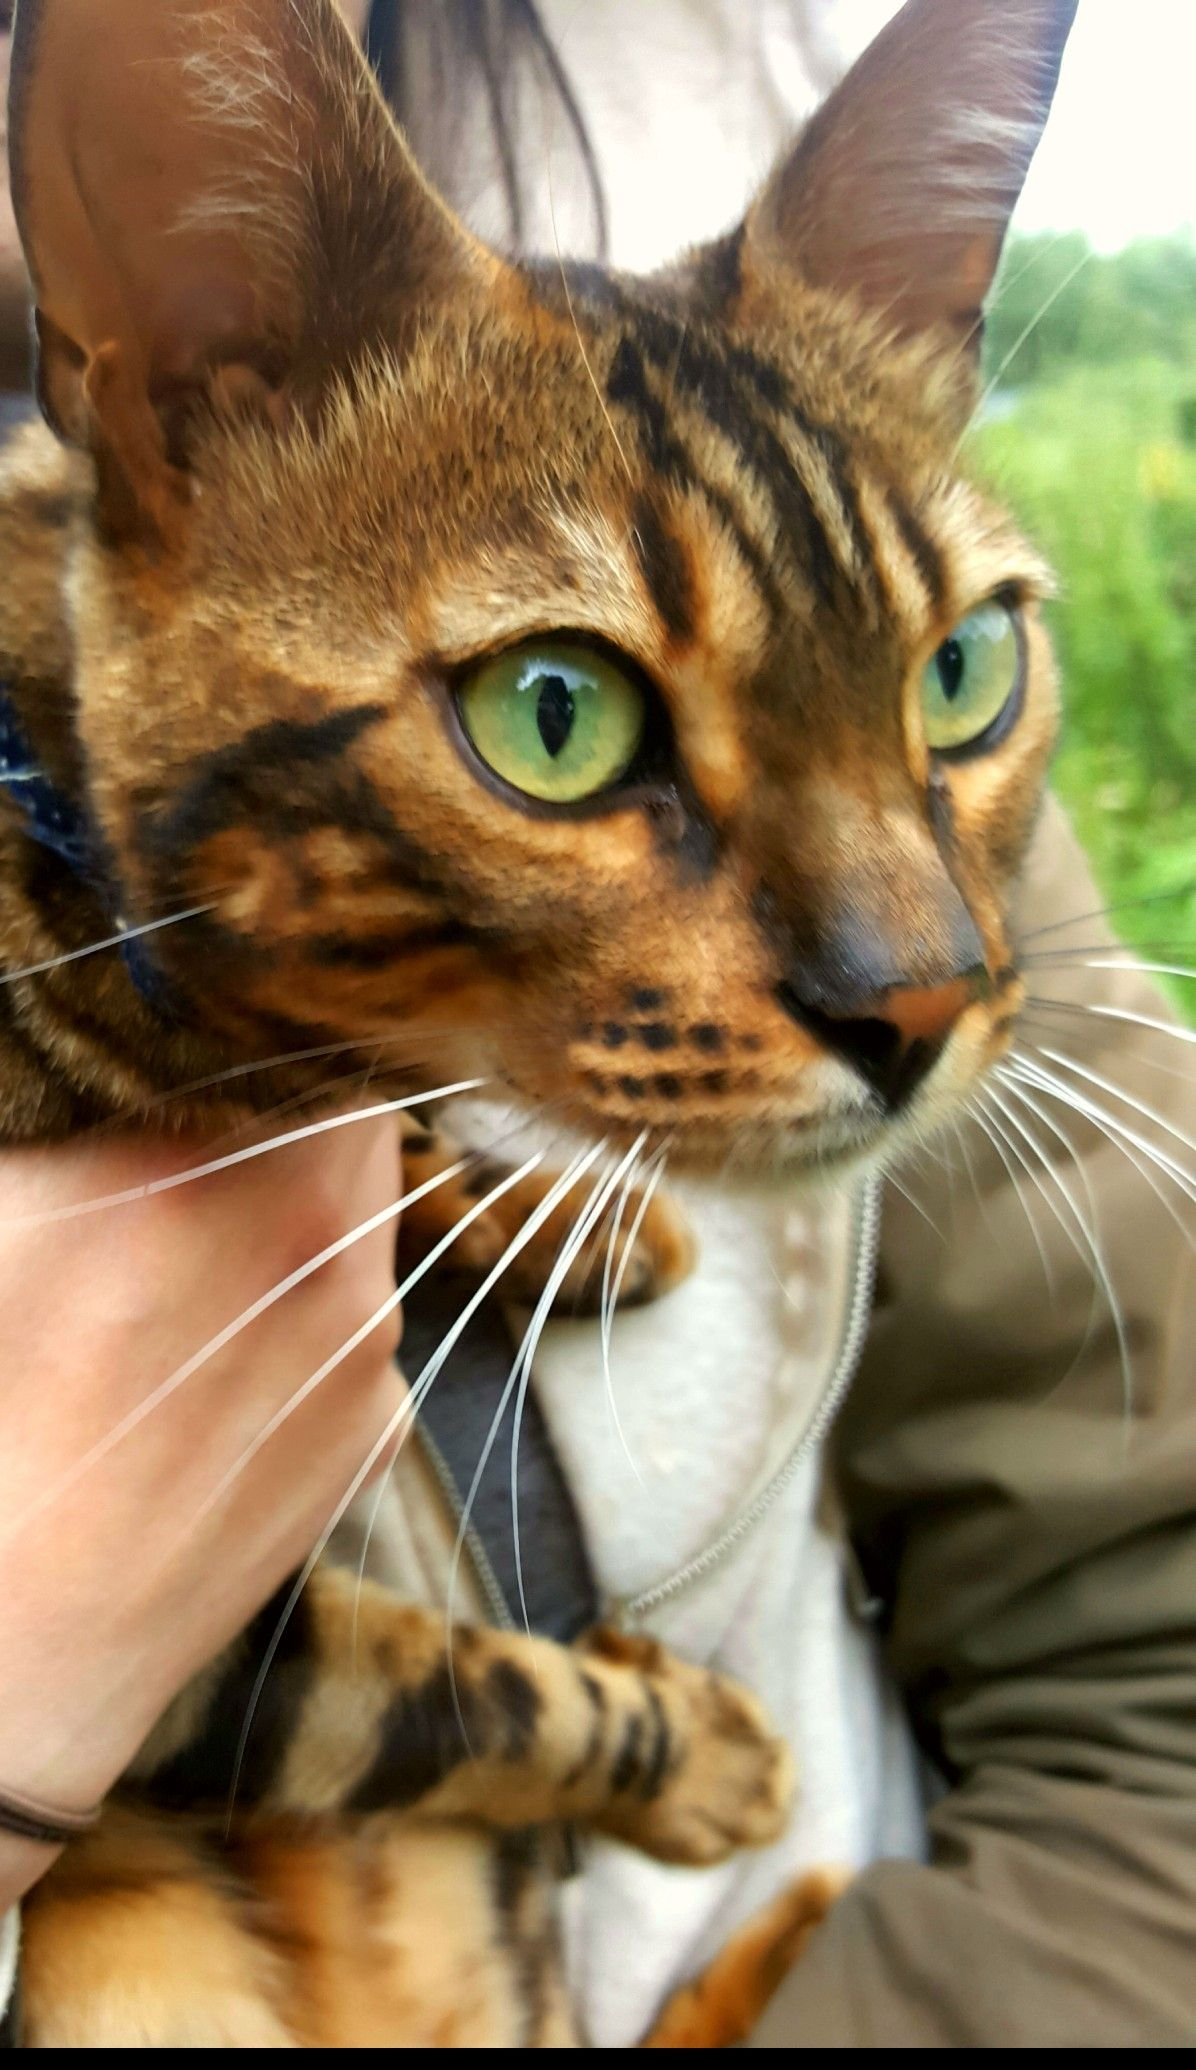 Bengal Cat came to say hello to us on our walk. bengalcat